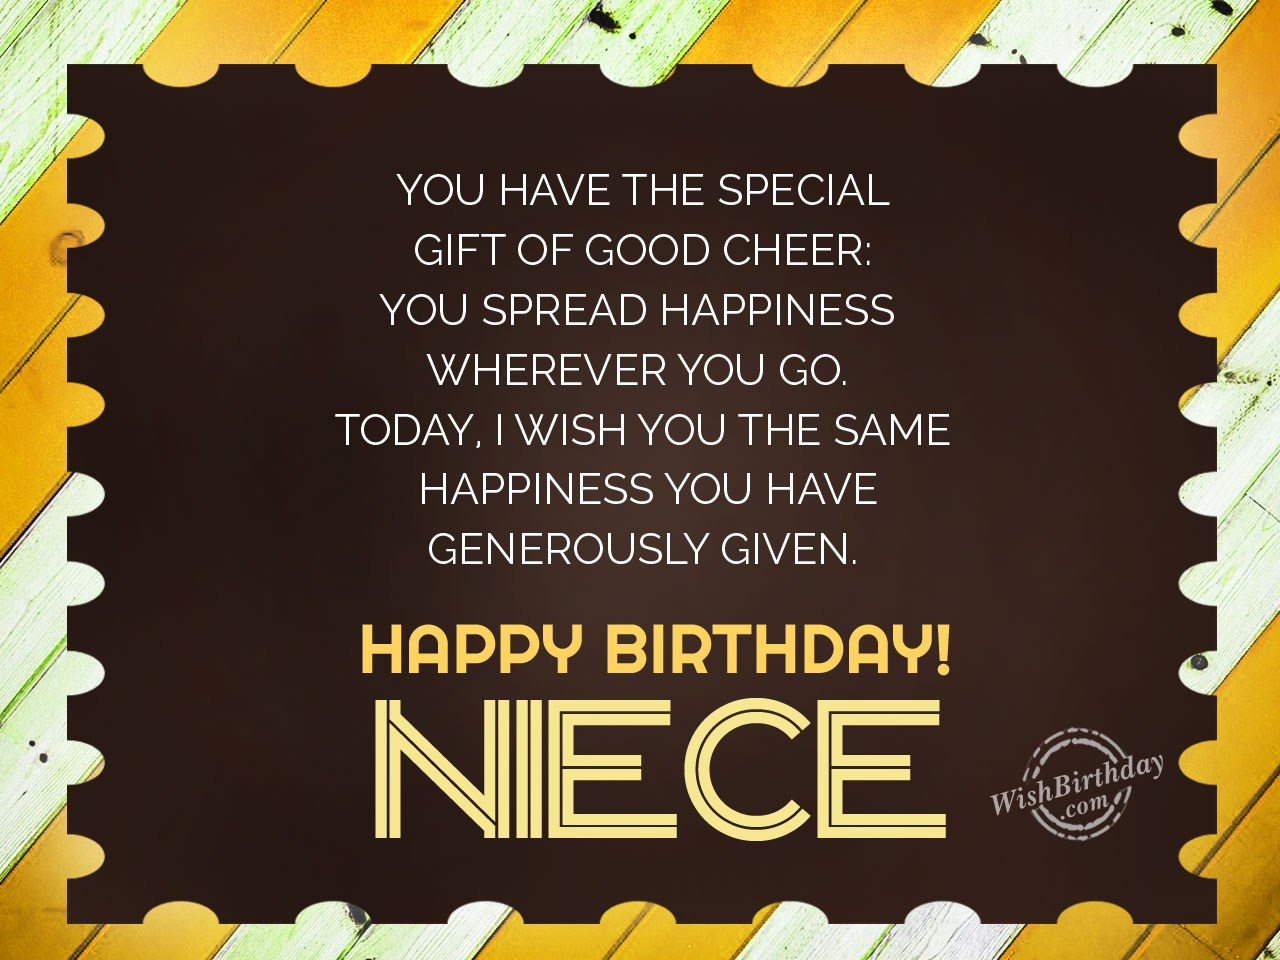 birthday wishes card for niece ; You-have-the-special